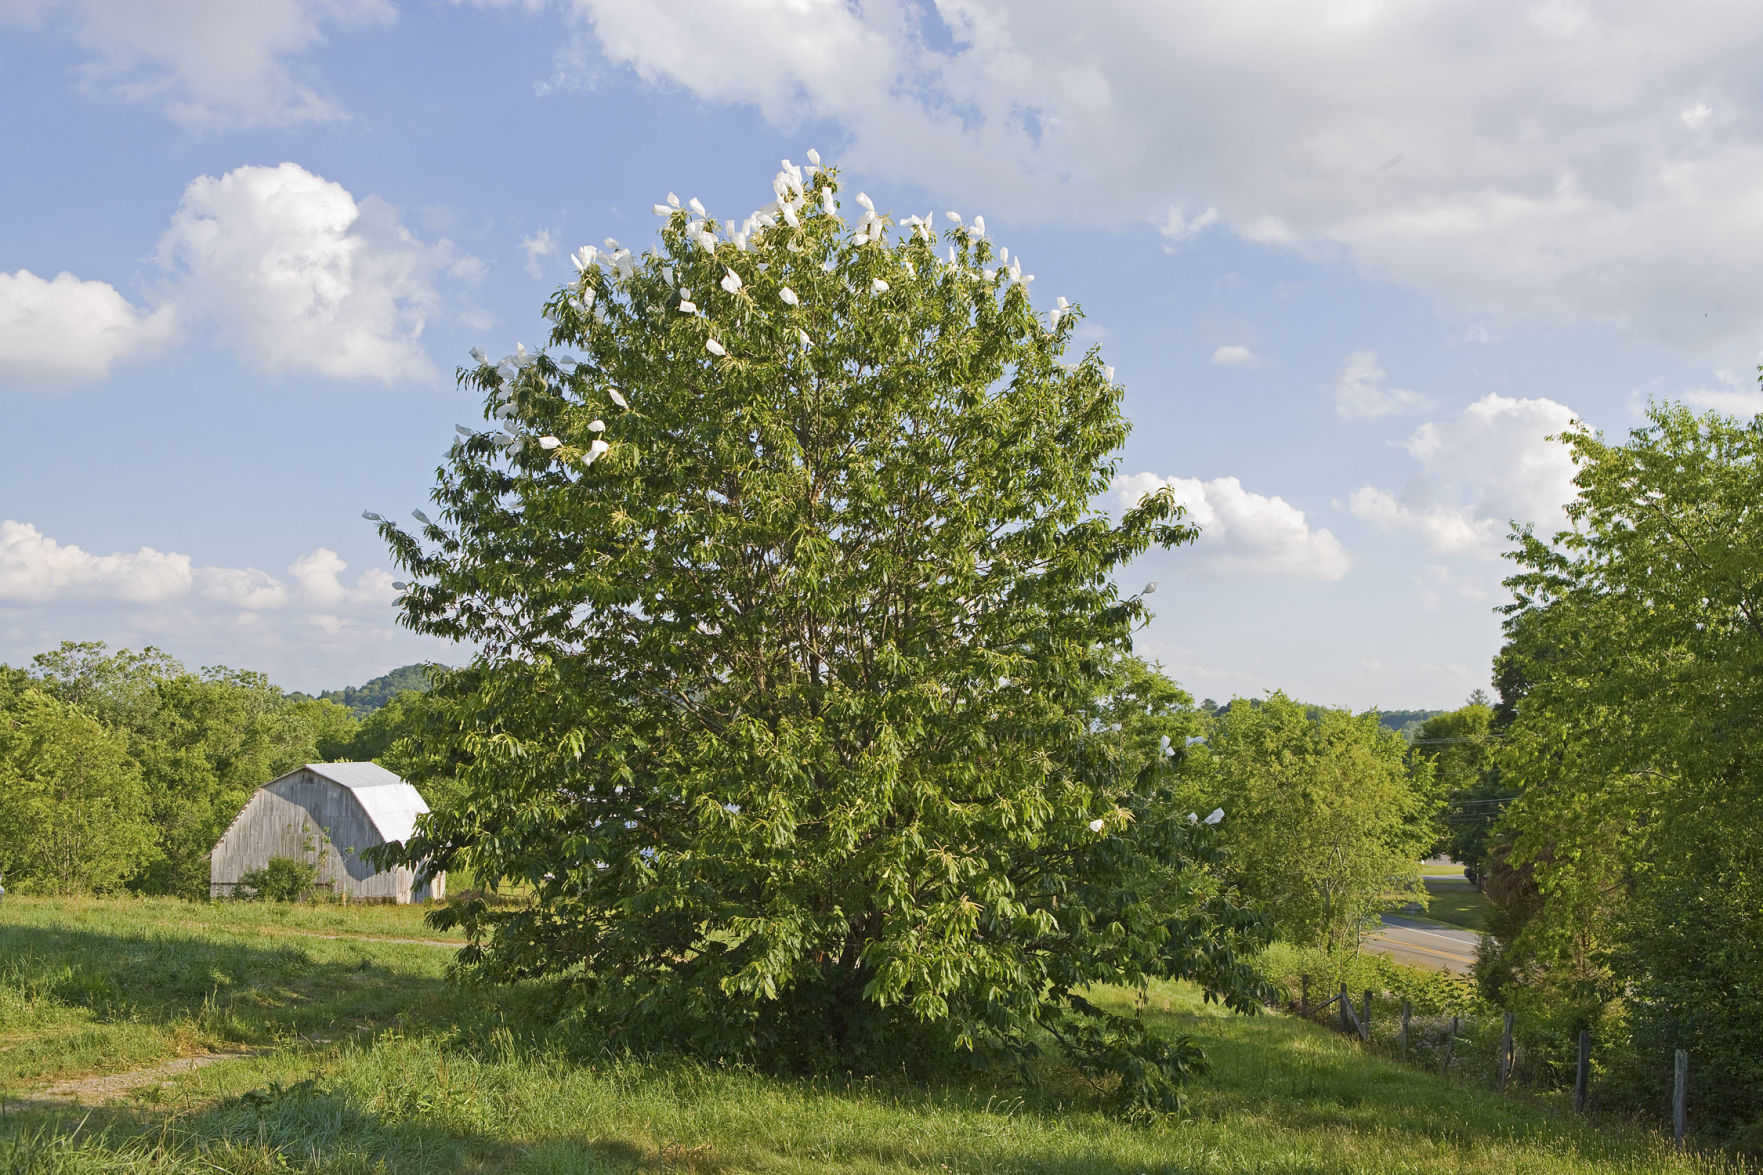 Work progresses on developing blightresistant American chestnut